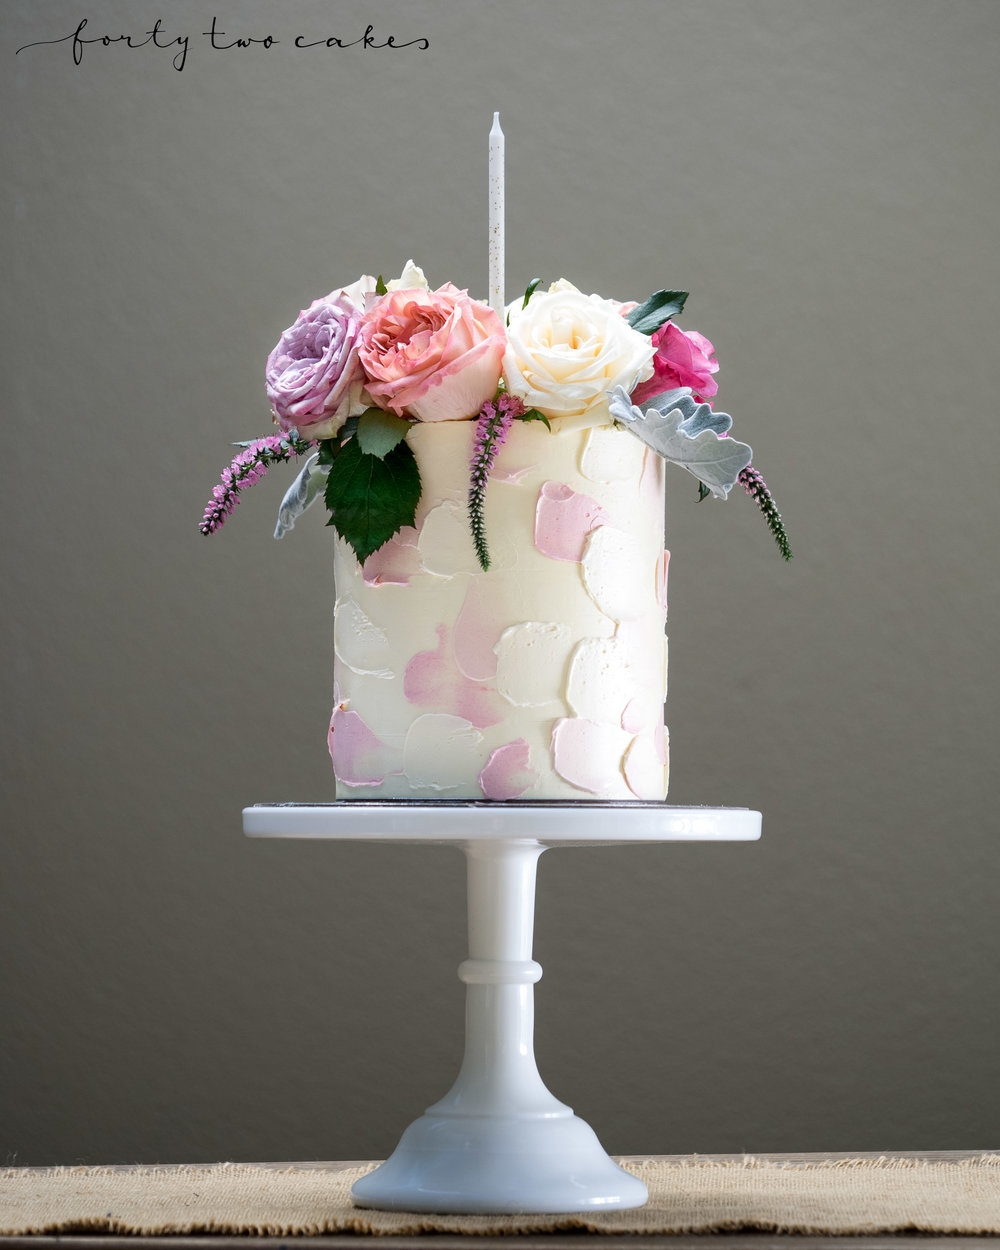 Forty-Two Cakes - Buttercream-07-3.jpg